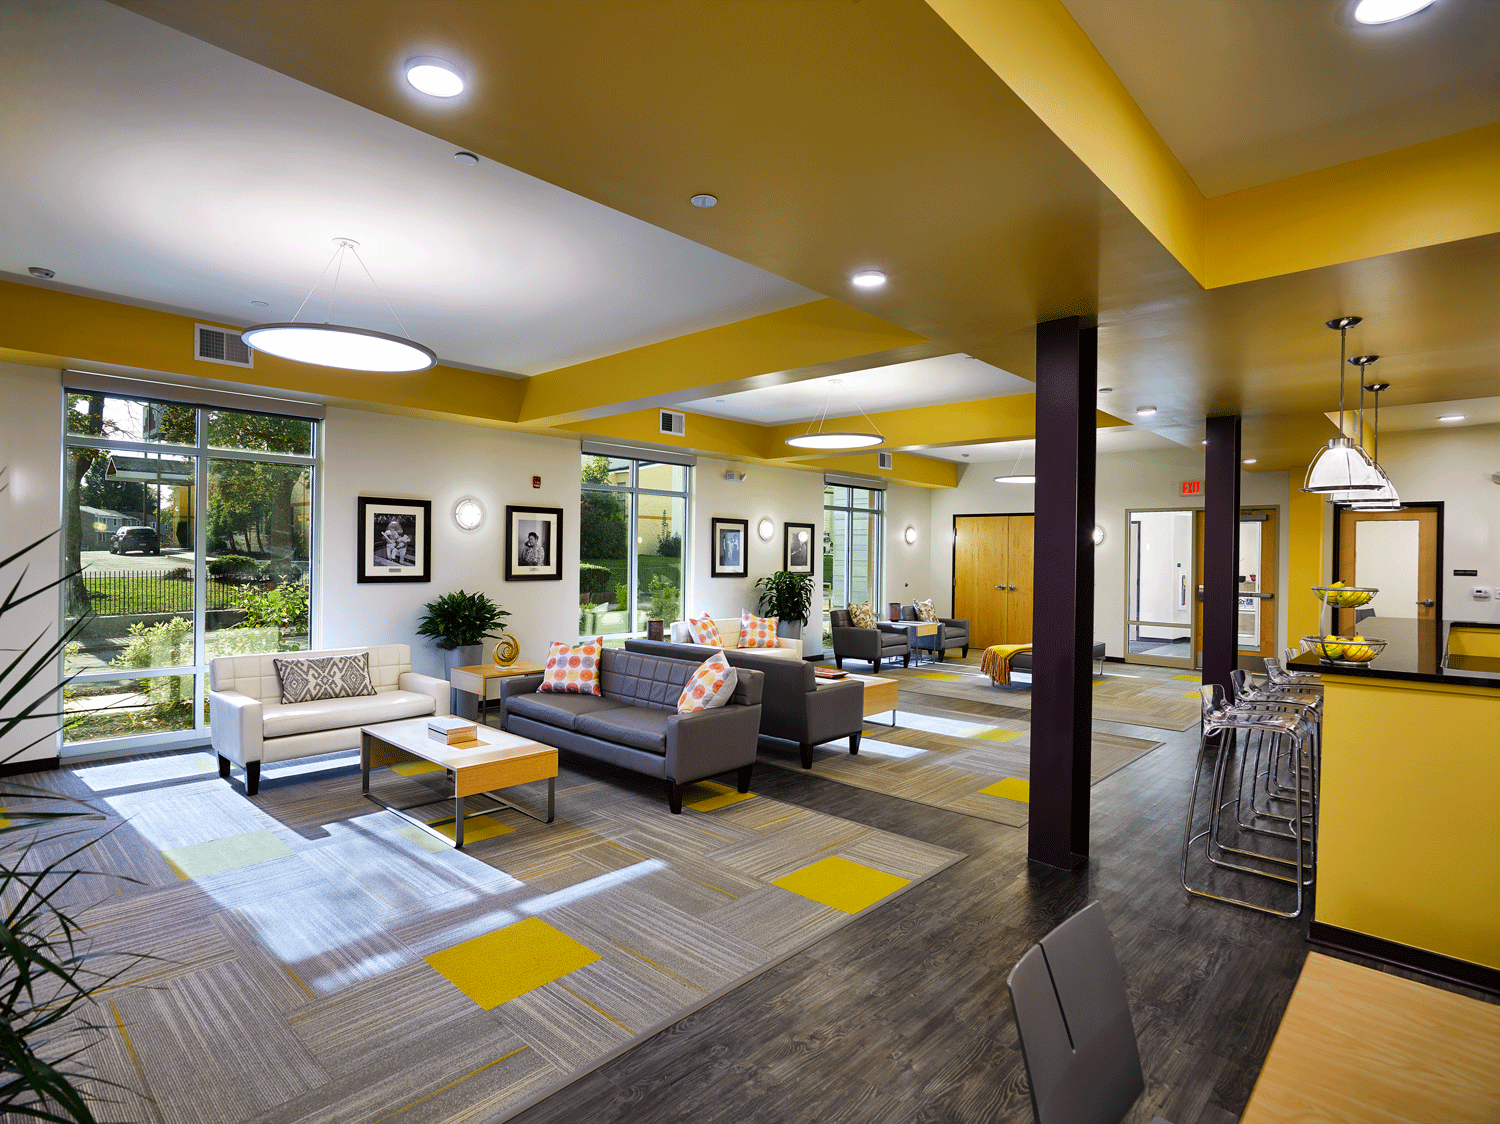 Community room with seating areas-Cornerstone Village, Pittsburgh,PA